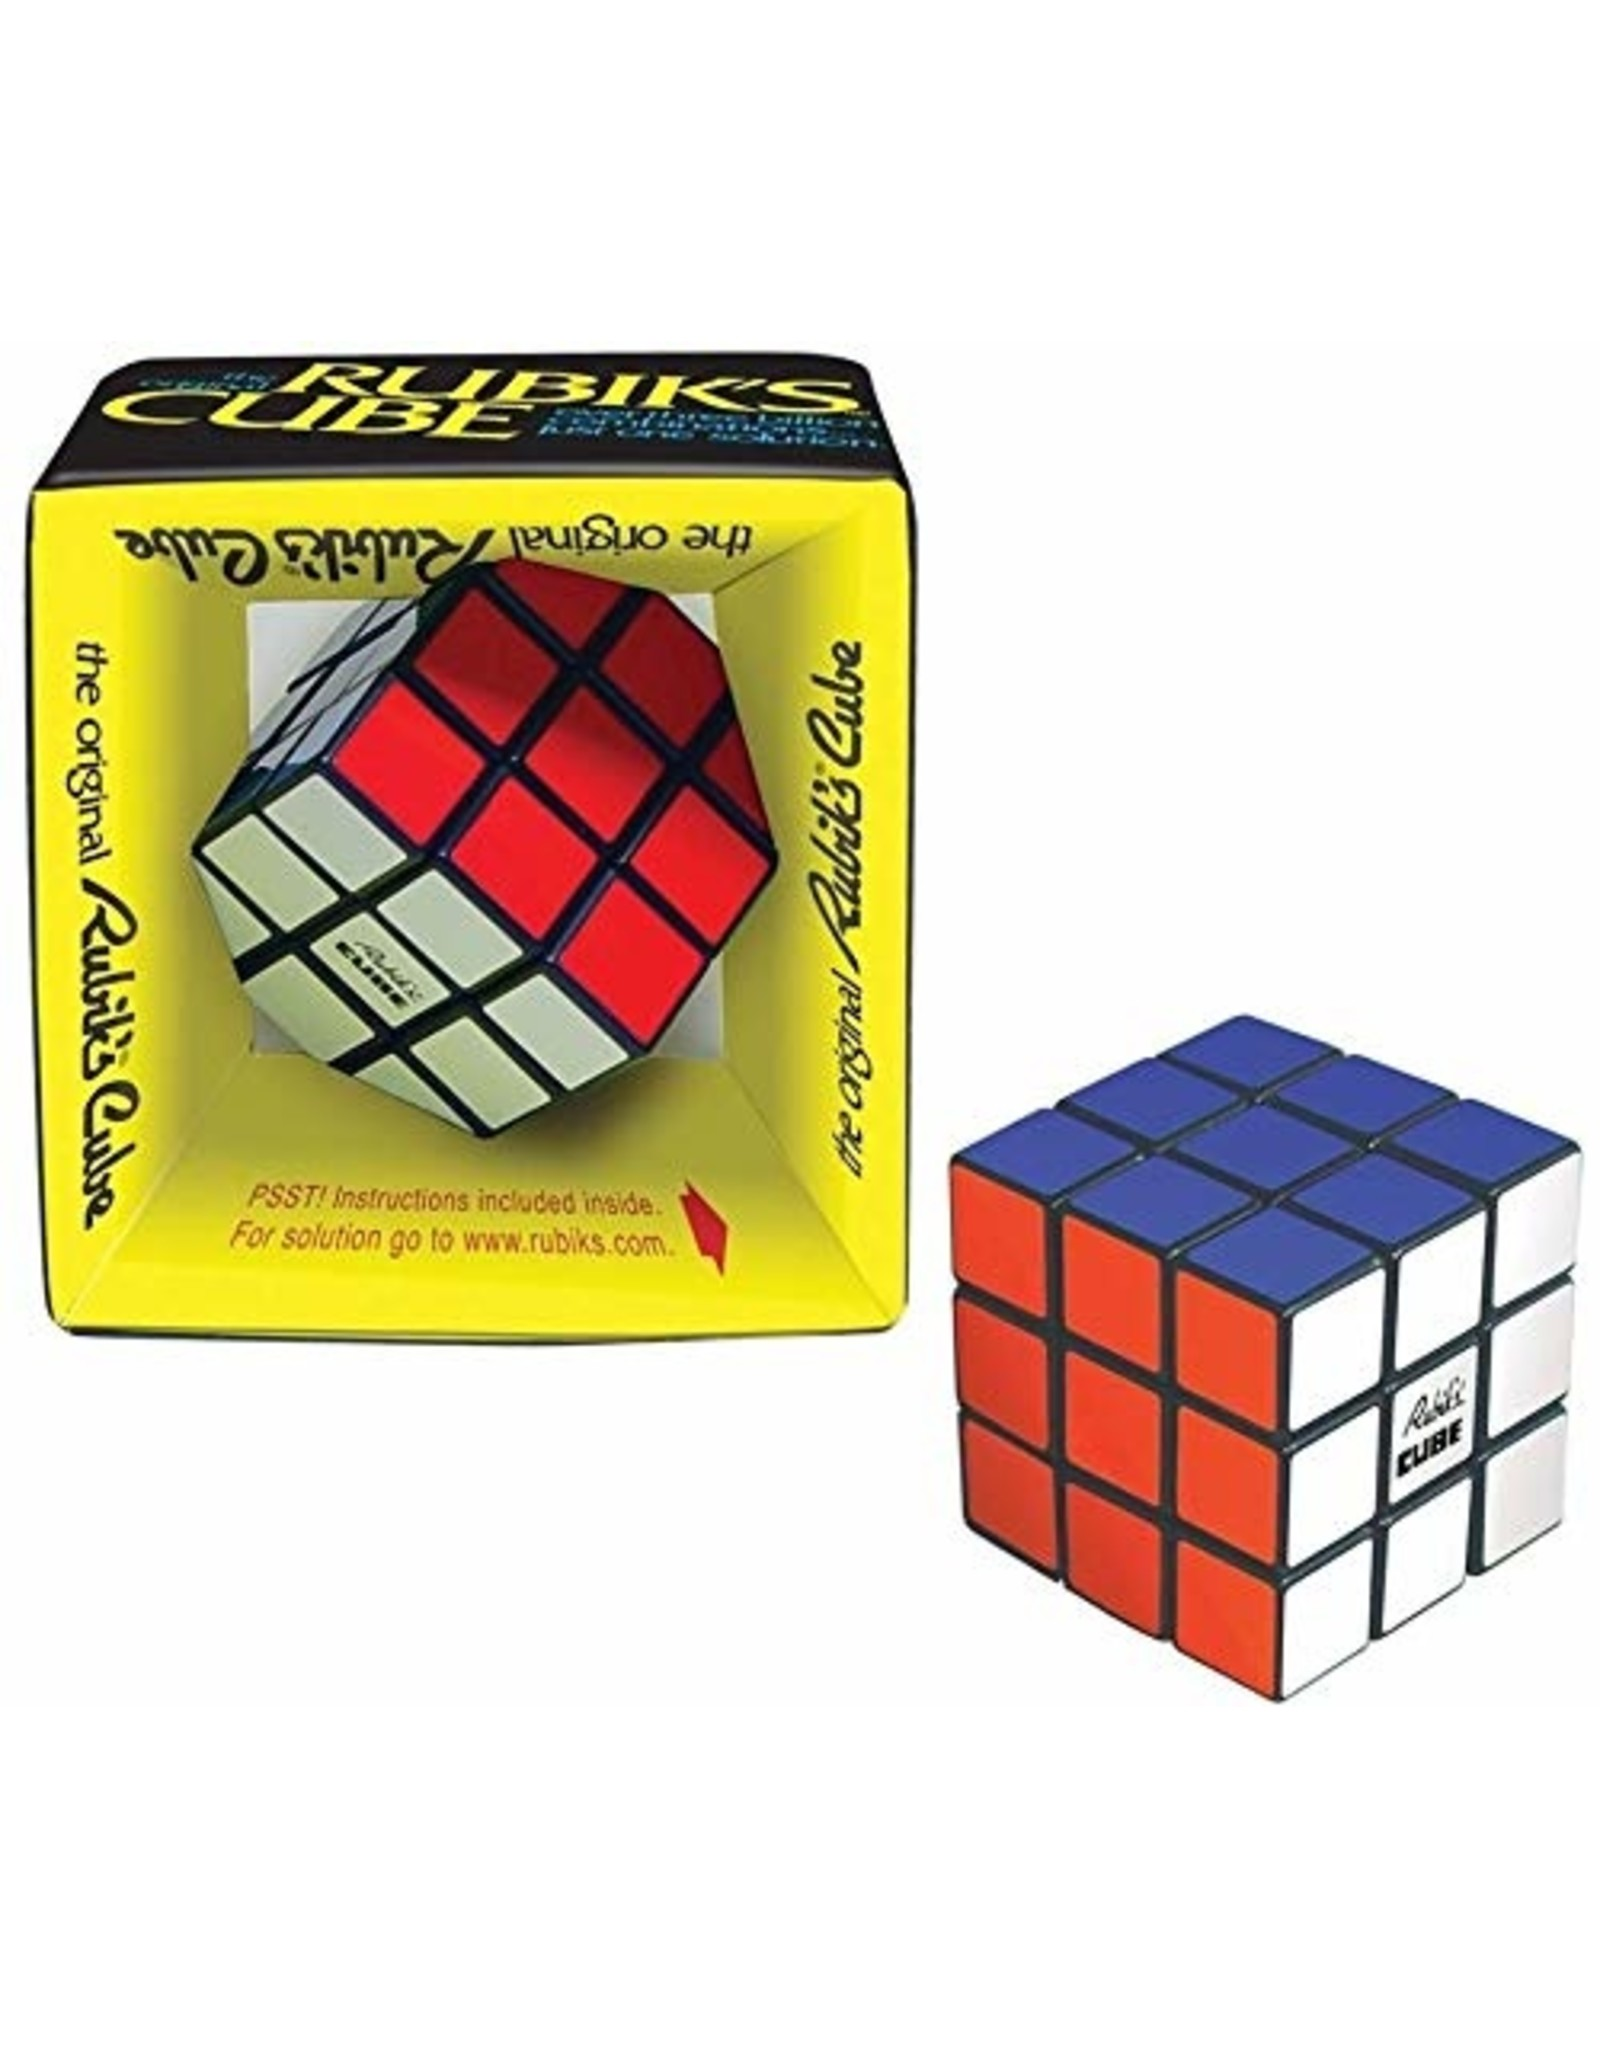 Winning Moves Original Rubik's Cube